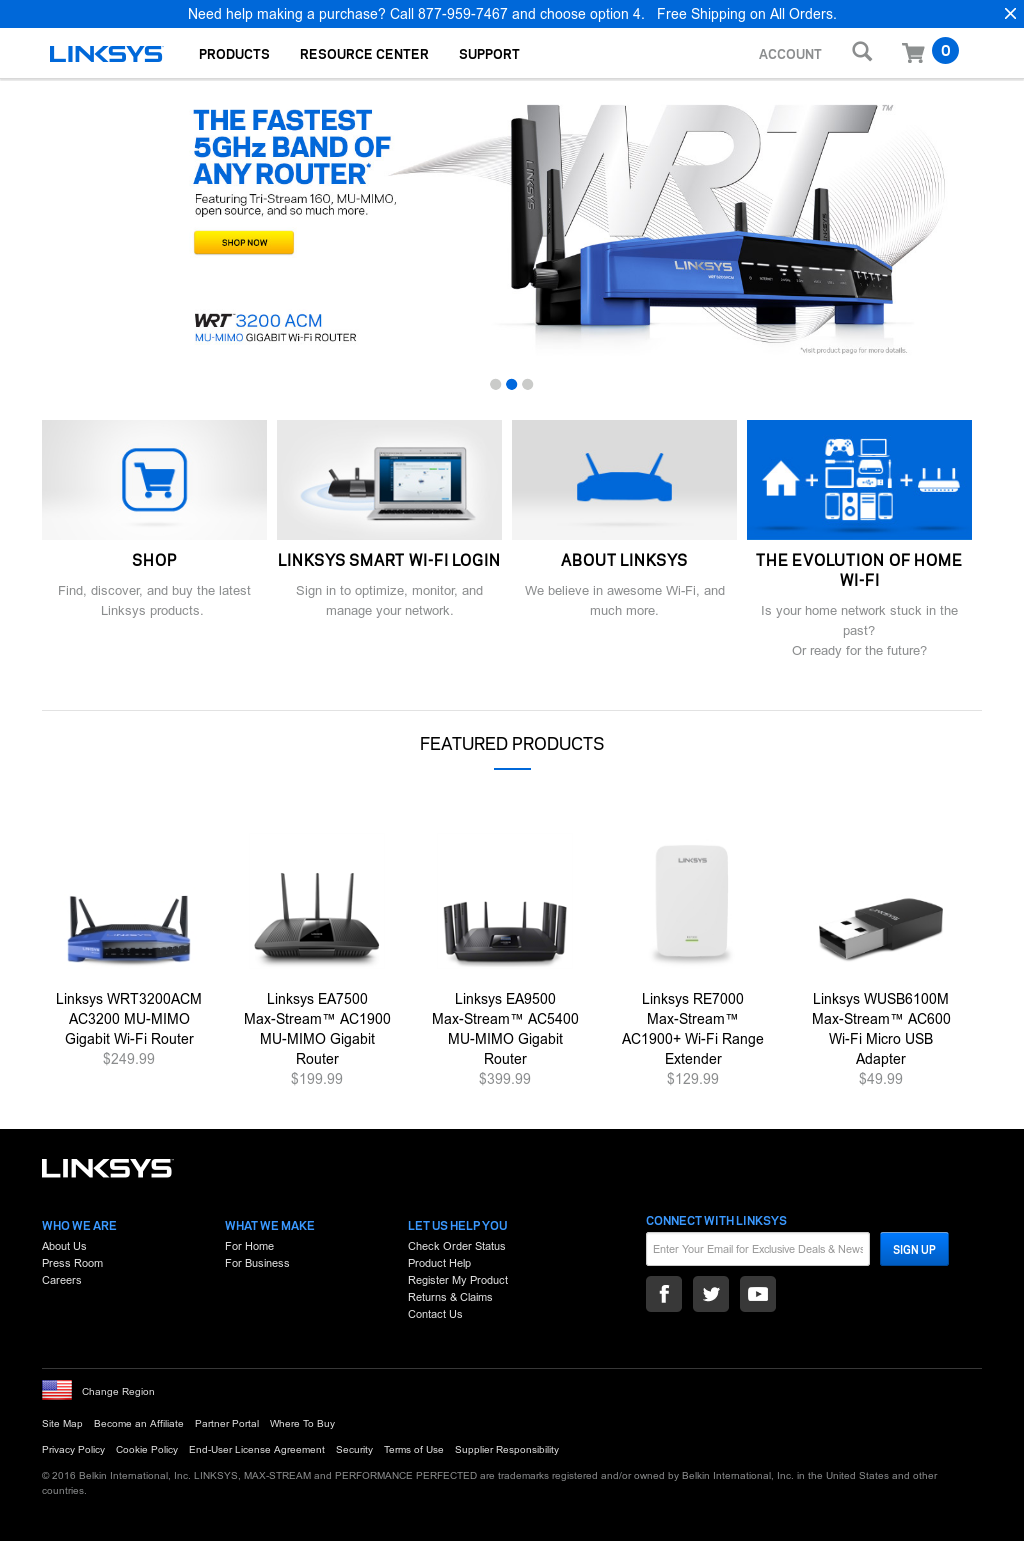 Linksys Competitors, Revenue and Employees - Owler Company Profile